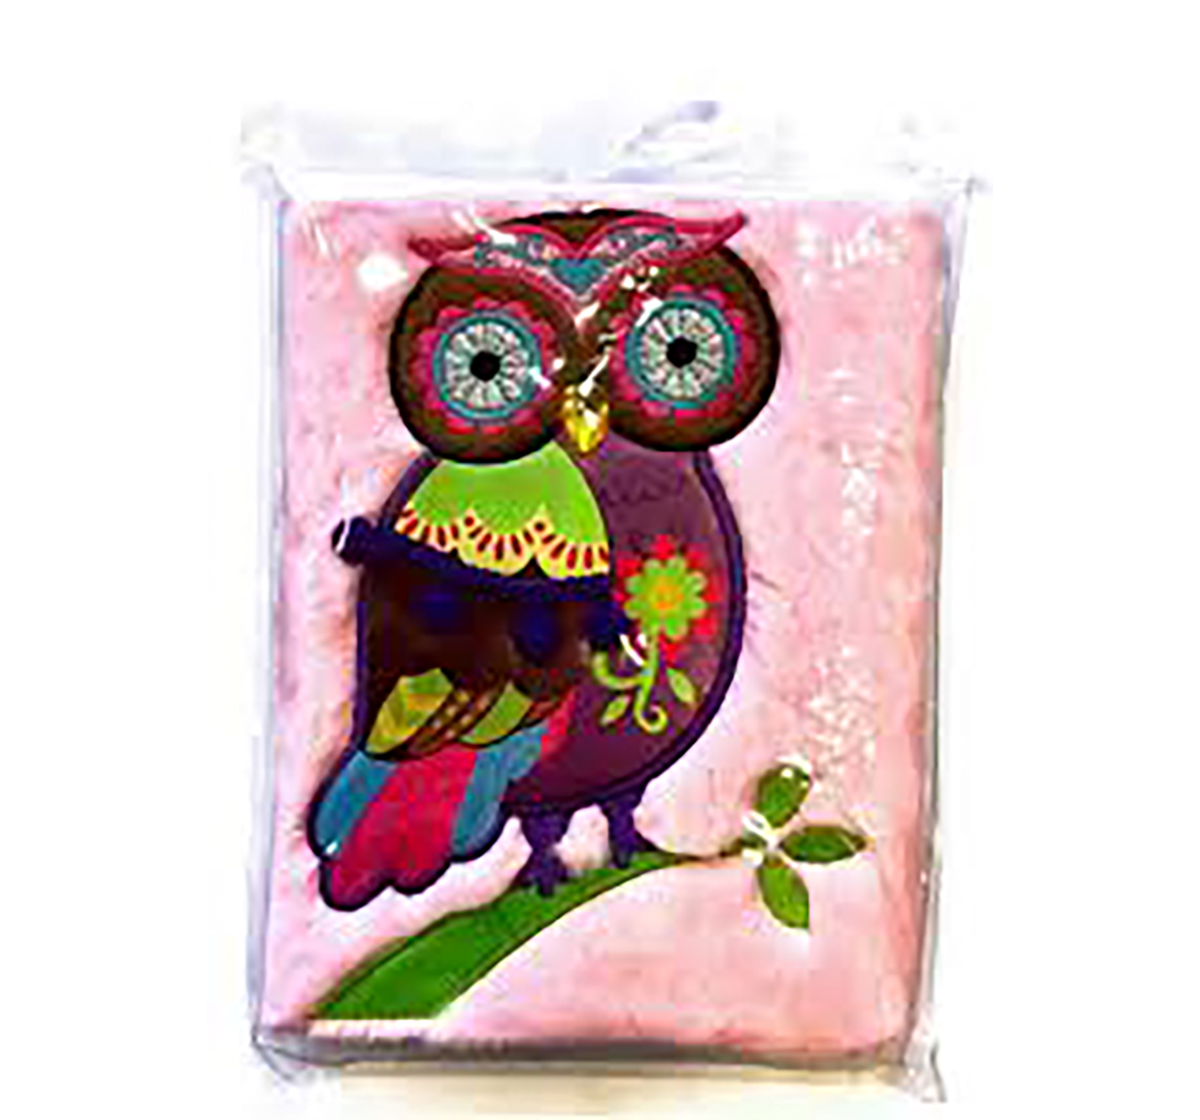 Mirada | Mirada Winky The Owl Plush Notebook- Study & Desk Accessories for Kids age 3Y+ (Pink)